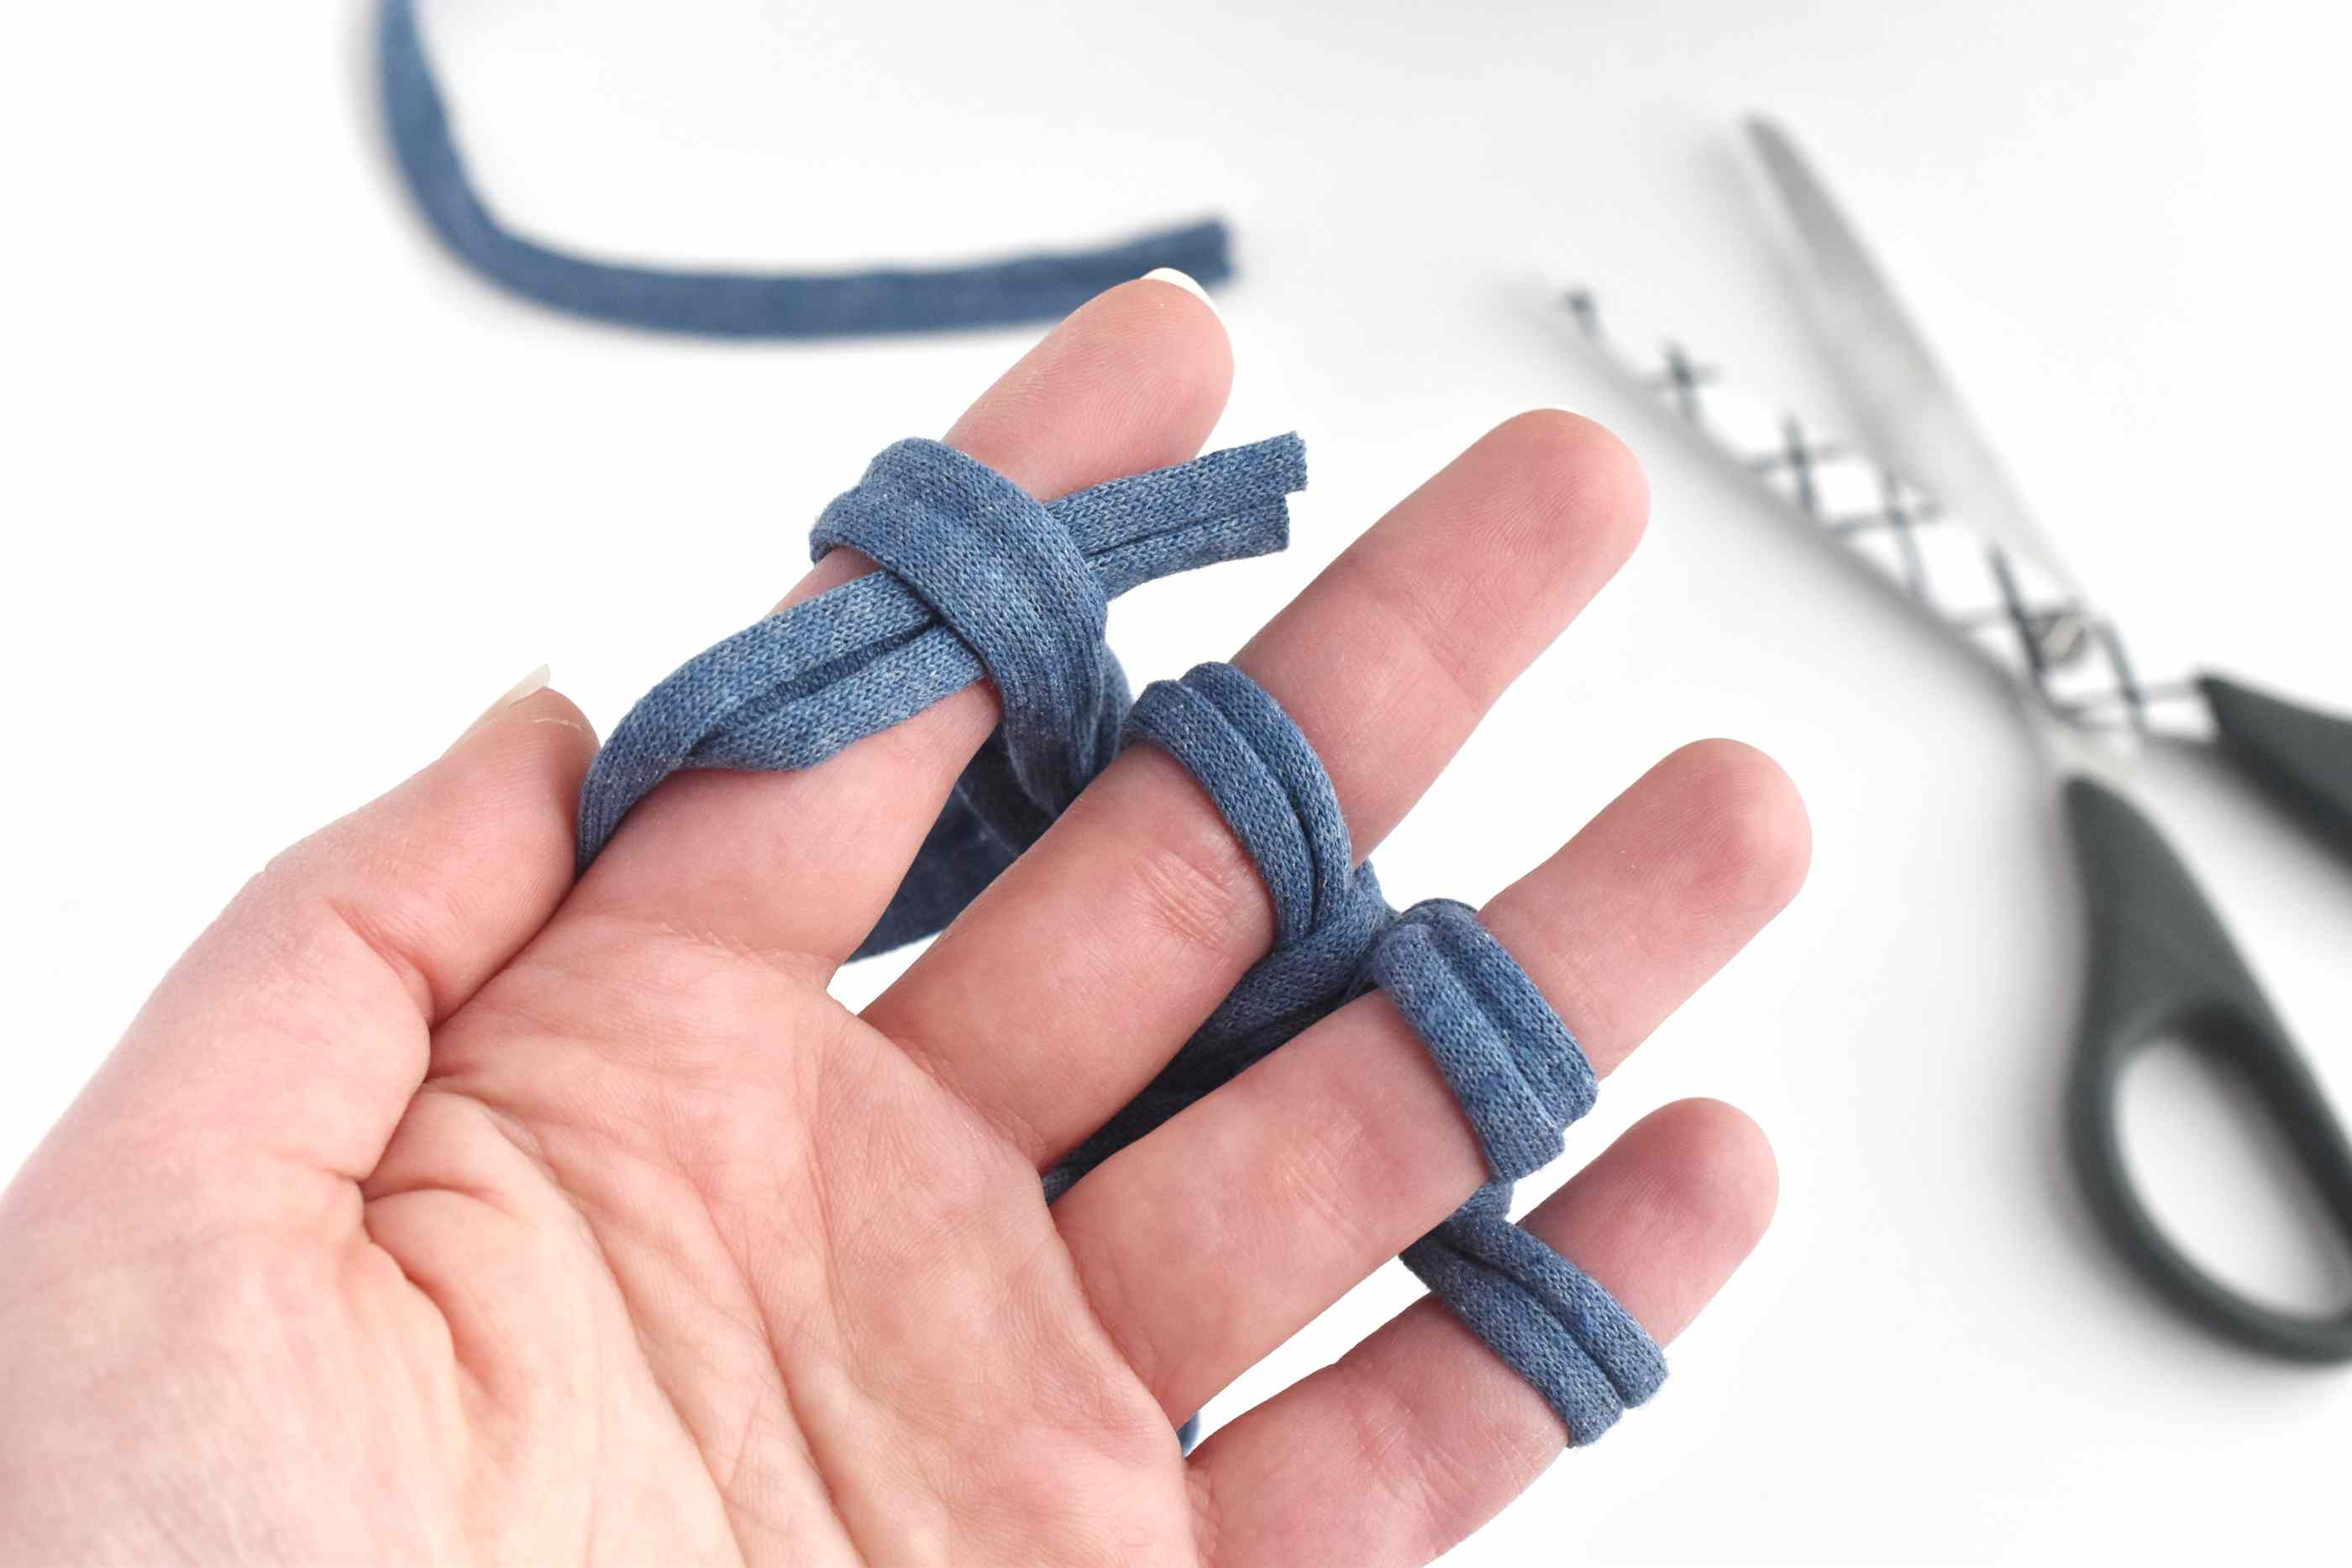 Slip the Yarn End Through the Stitches to End